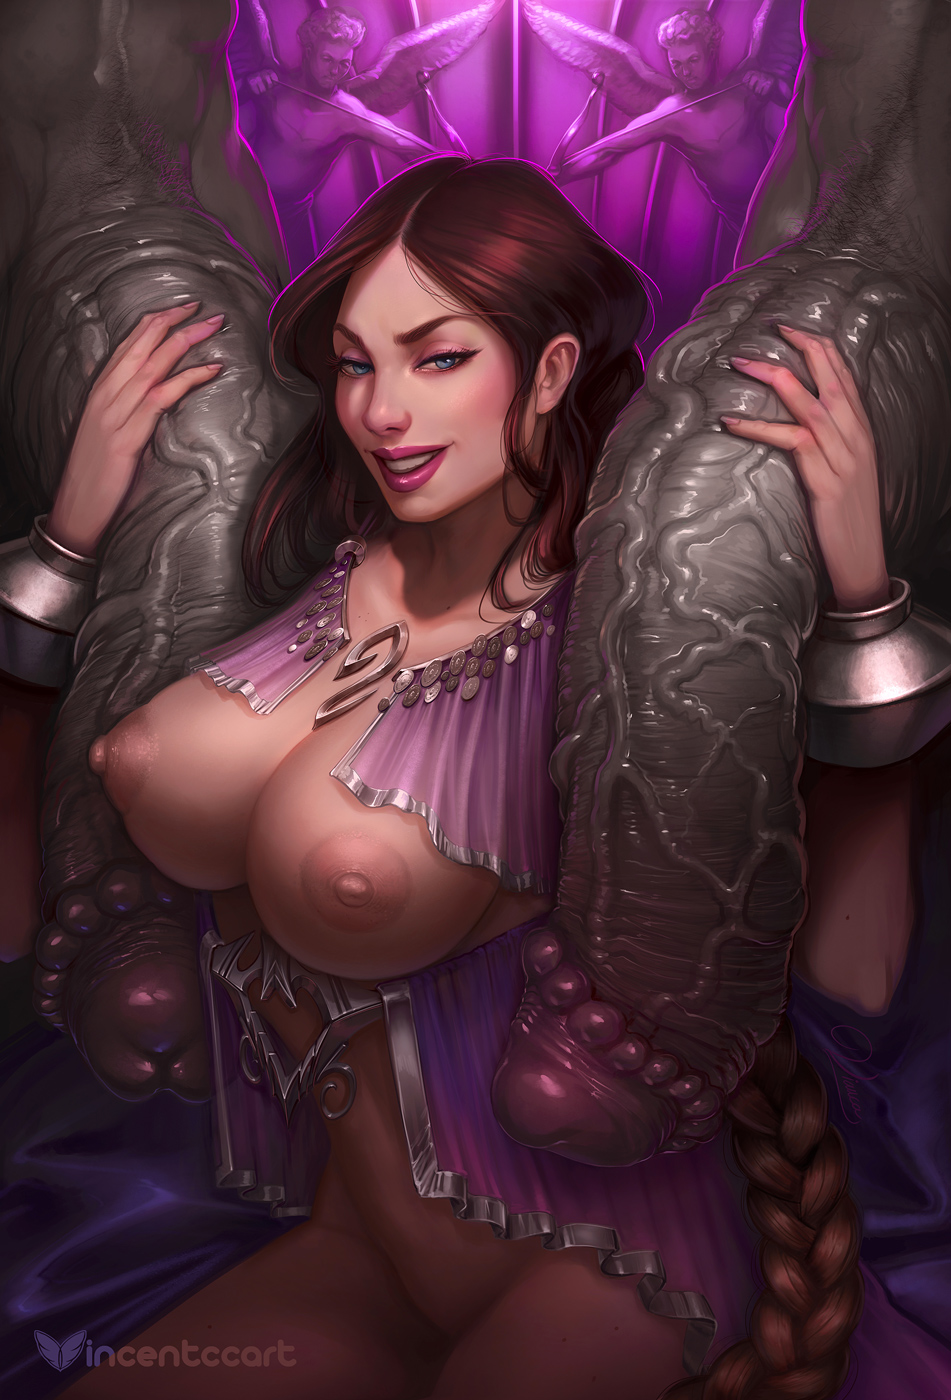 god handmaidens war of aphrodite How to get to pickle pee